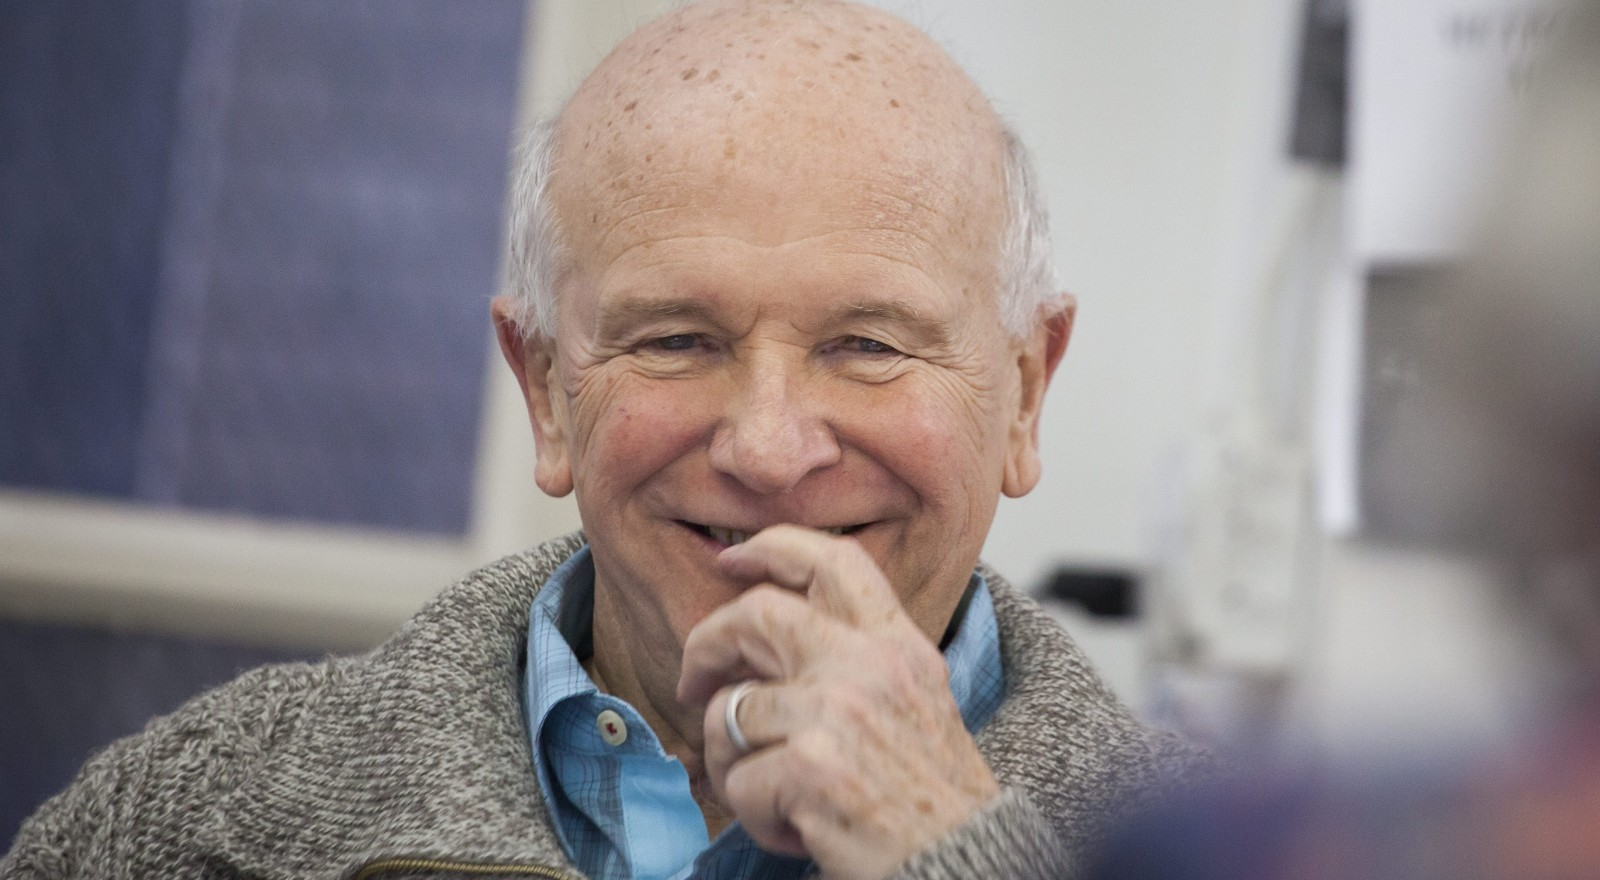 Playwright Terrence McNally will visit Buffalo on April 1 and 2 for a master class and fundraiser for Buffalo United Artists. (Michael Nagle)